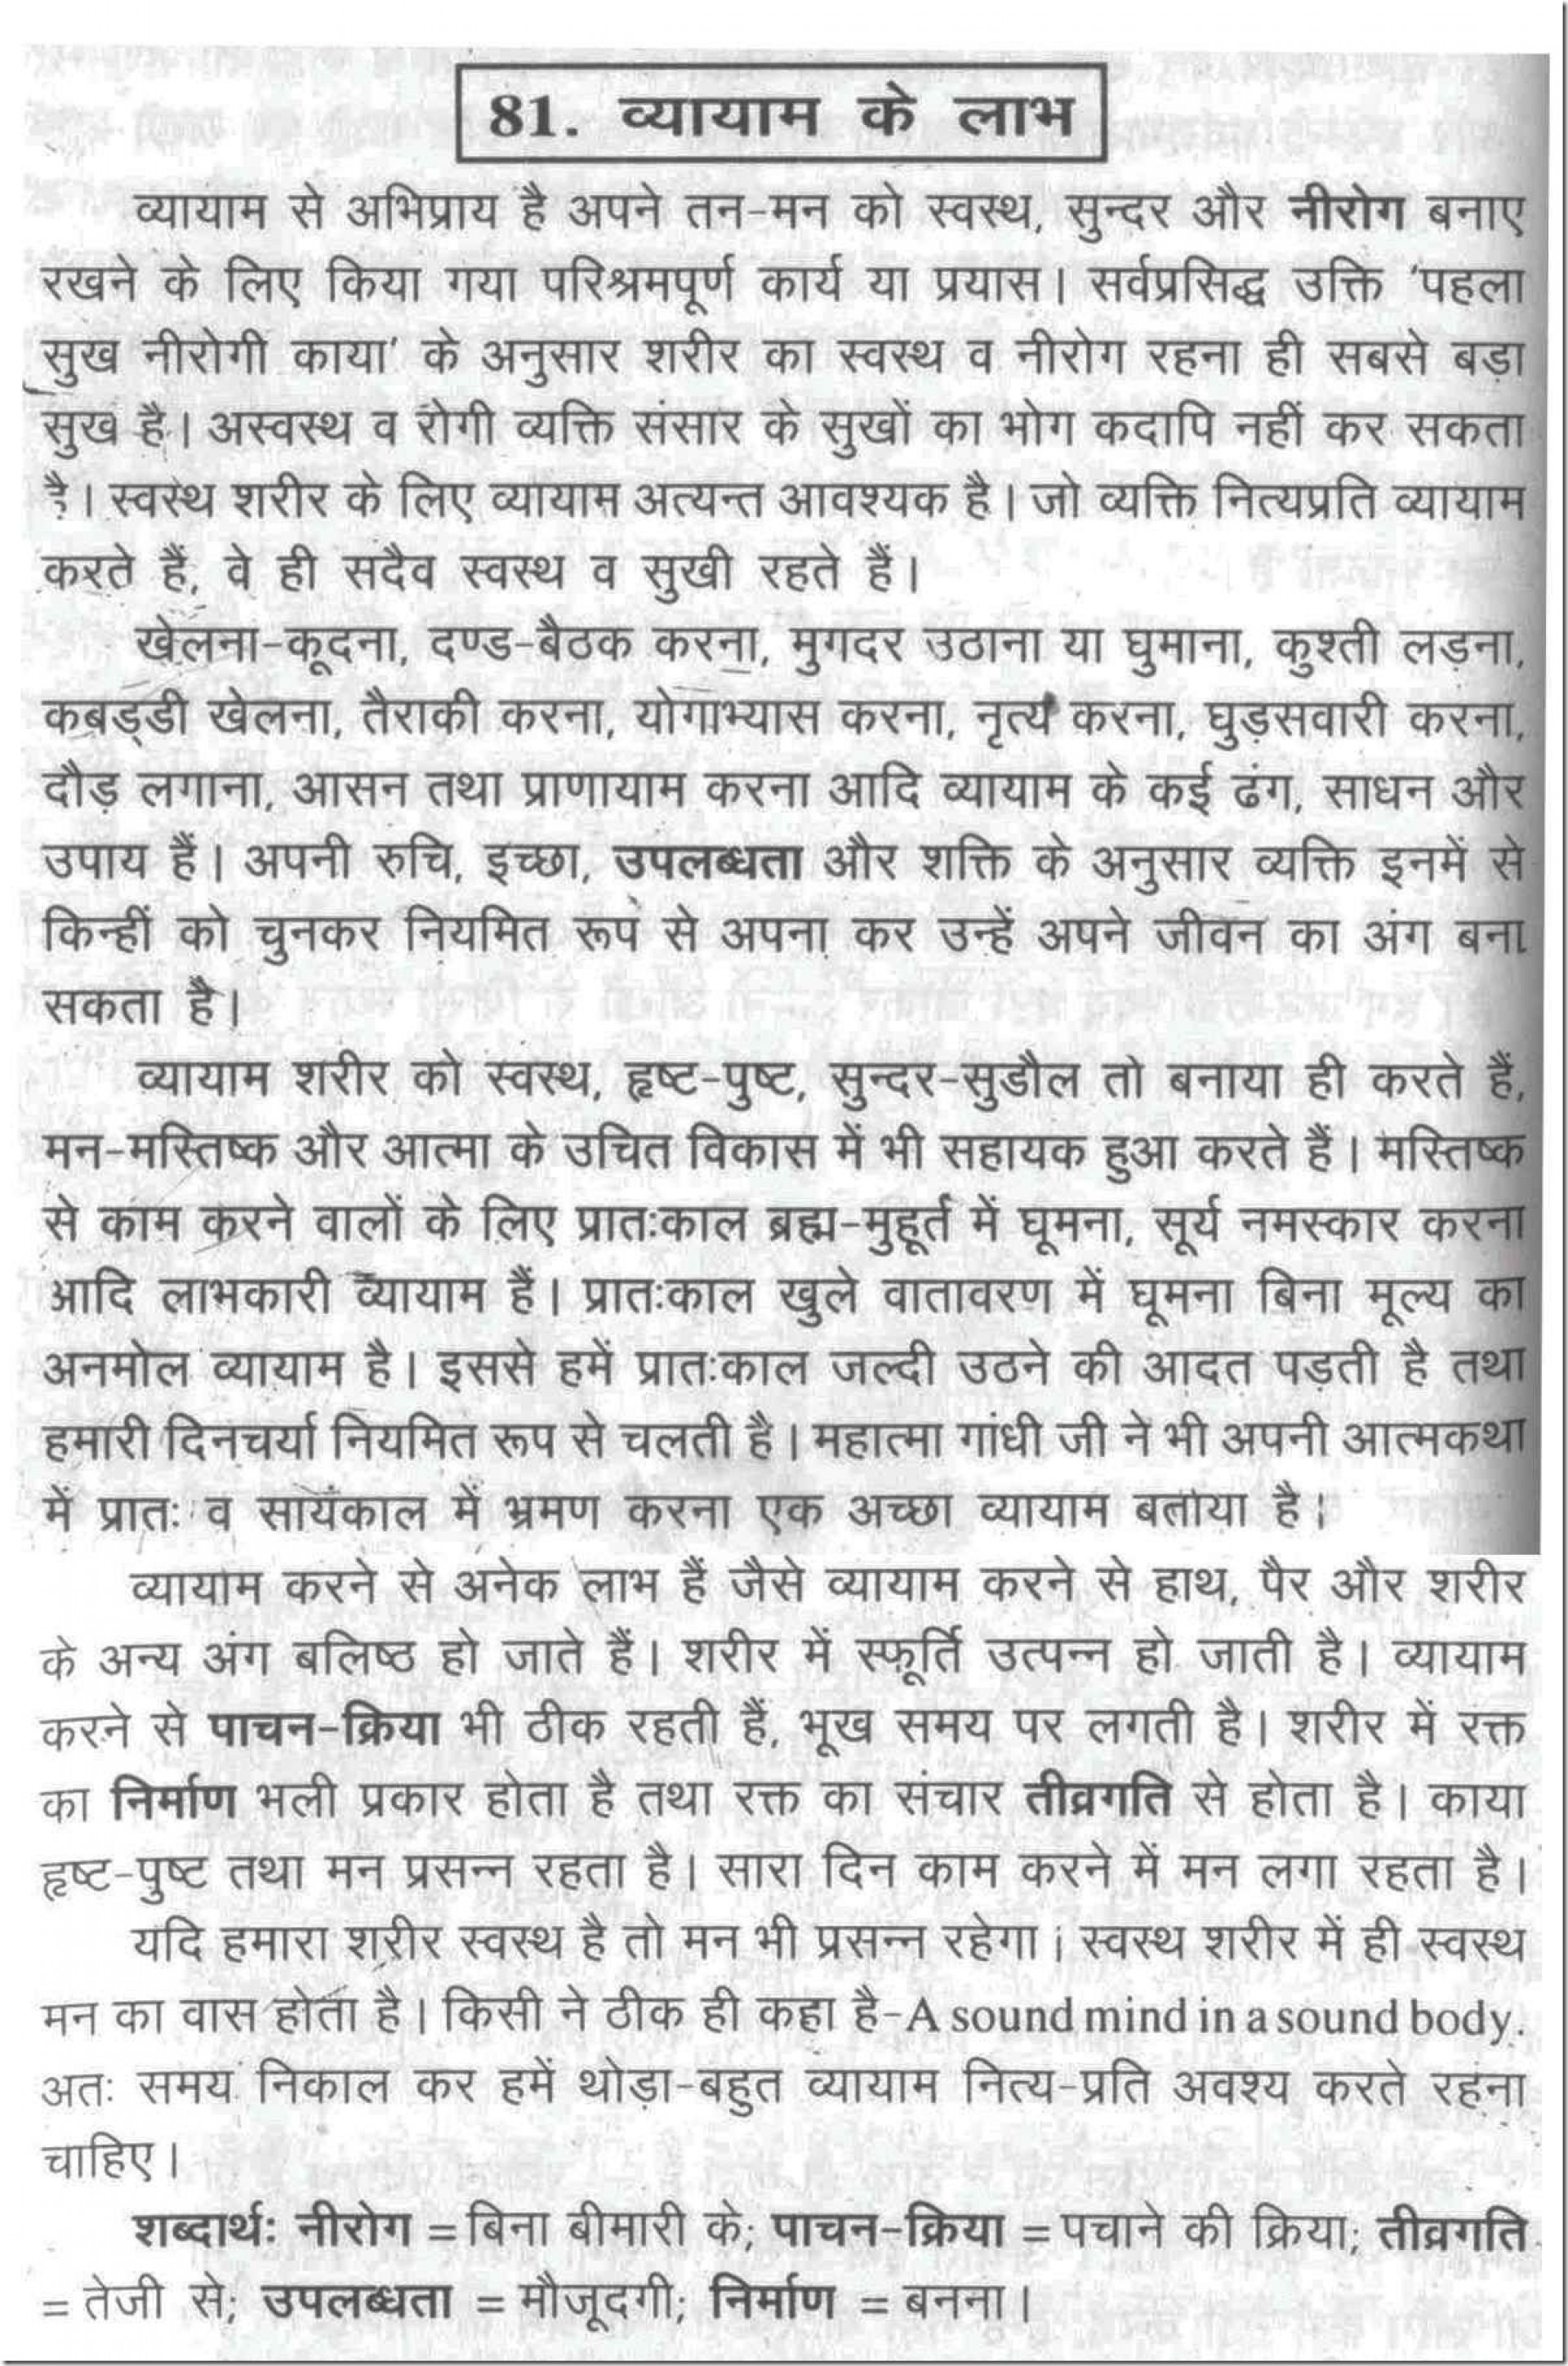 011 2563478896 Essay On Health And Fitness Through Food Good Habits In Hindi Exceptional Reading Habit Wikipedia 1920